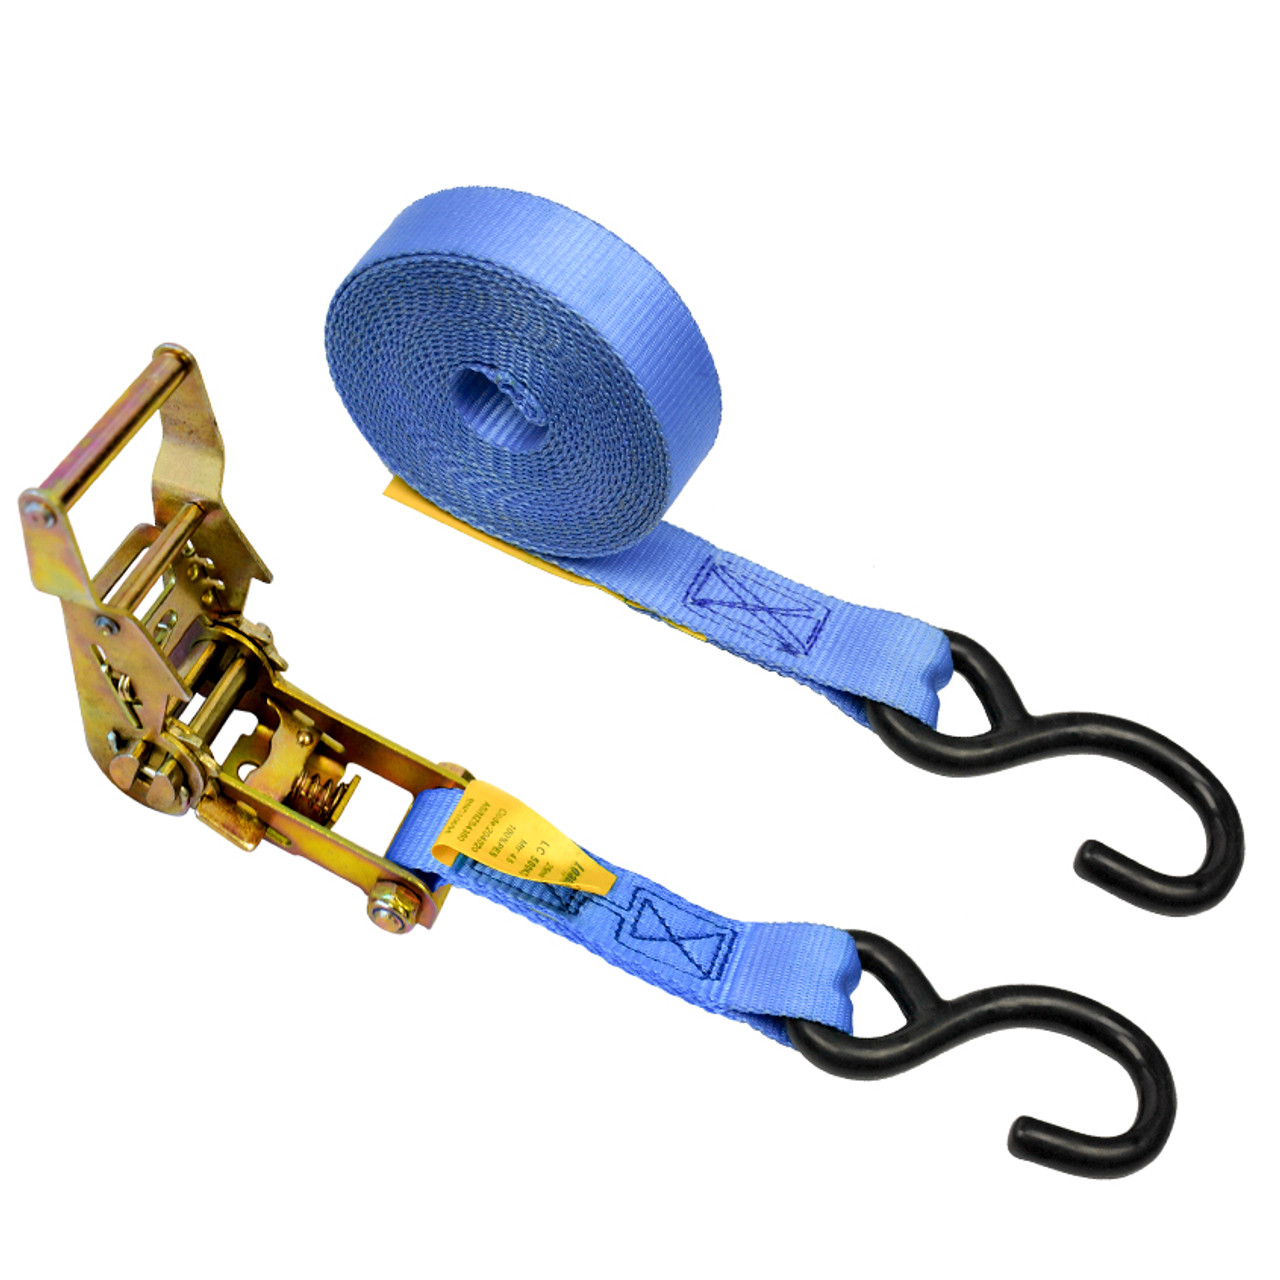 25mmx4.5m Ratchet Tie Down S Hooks